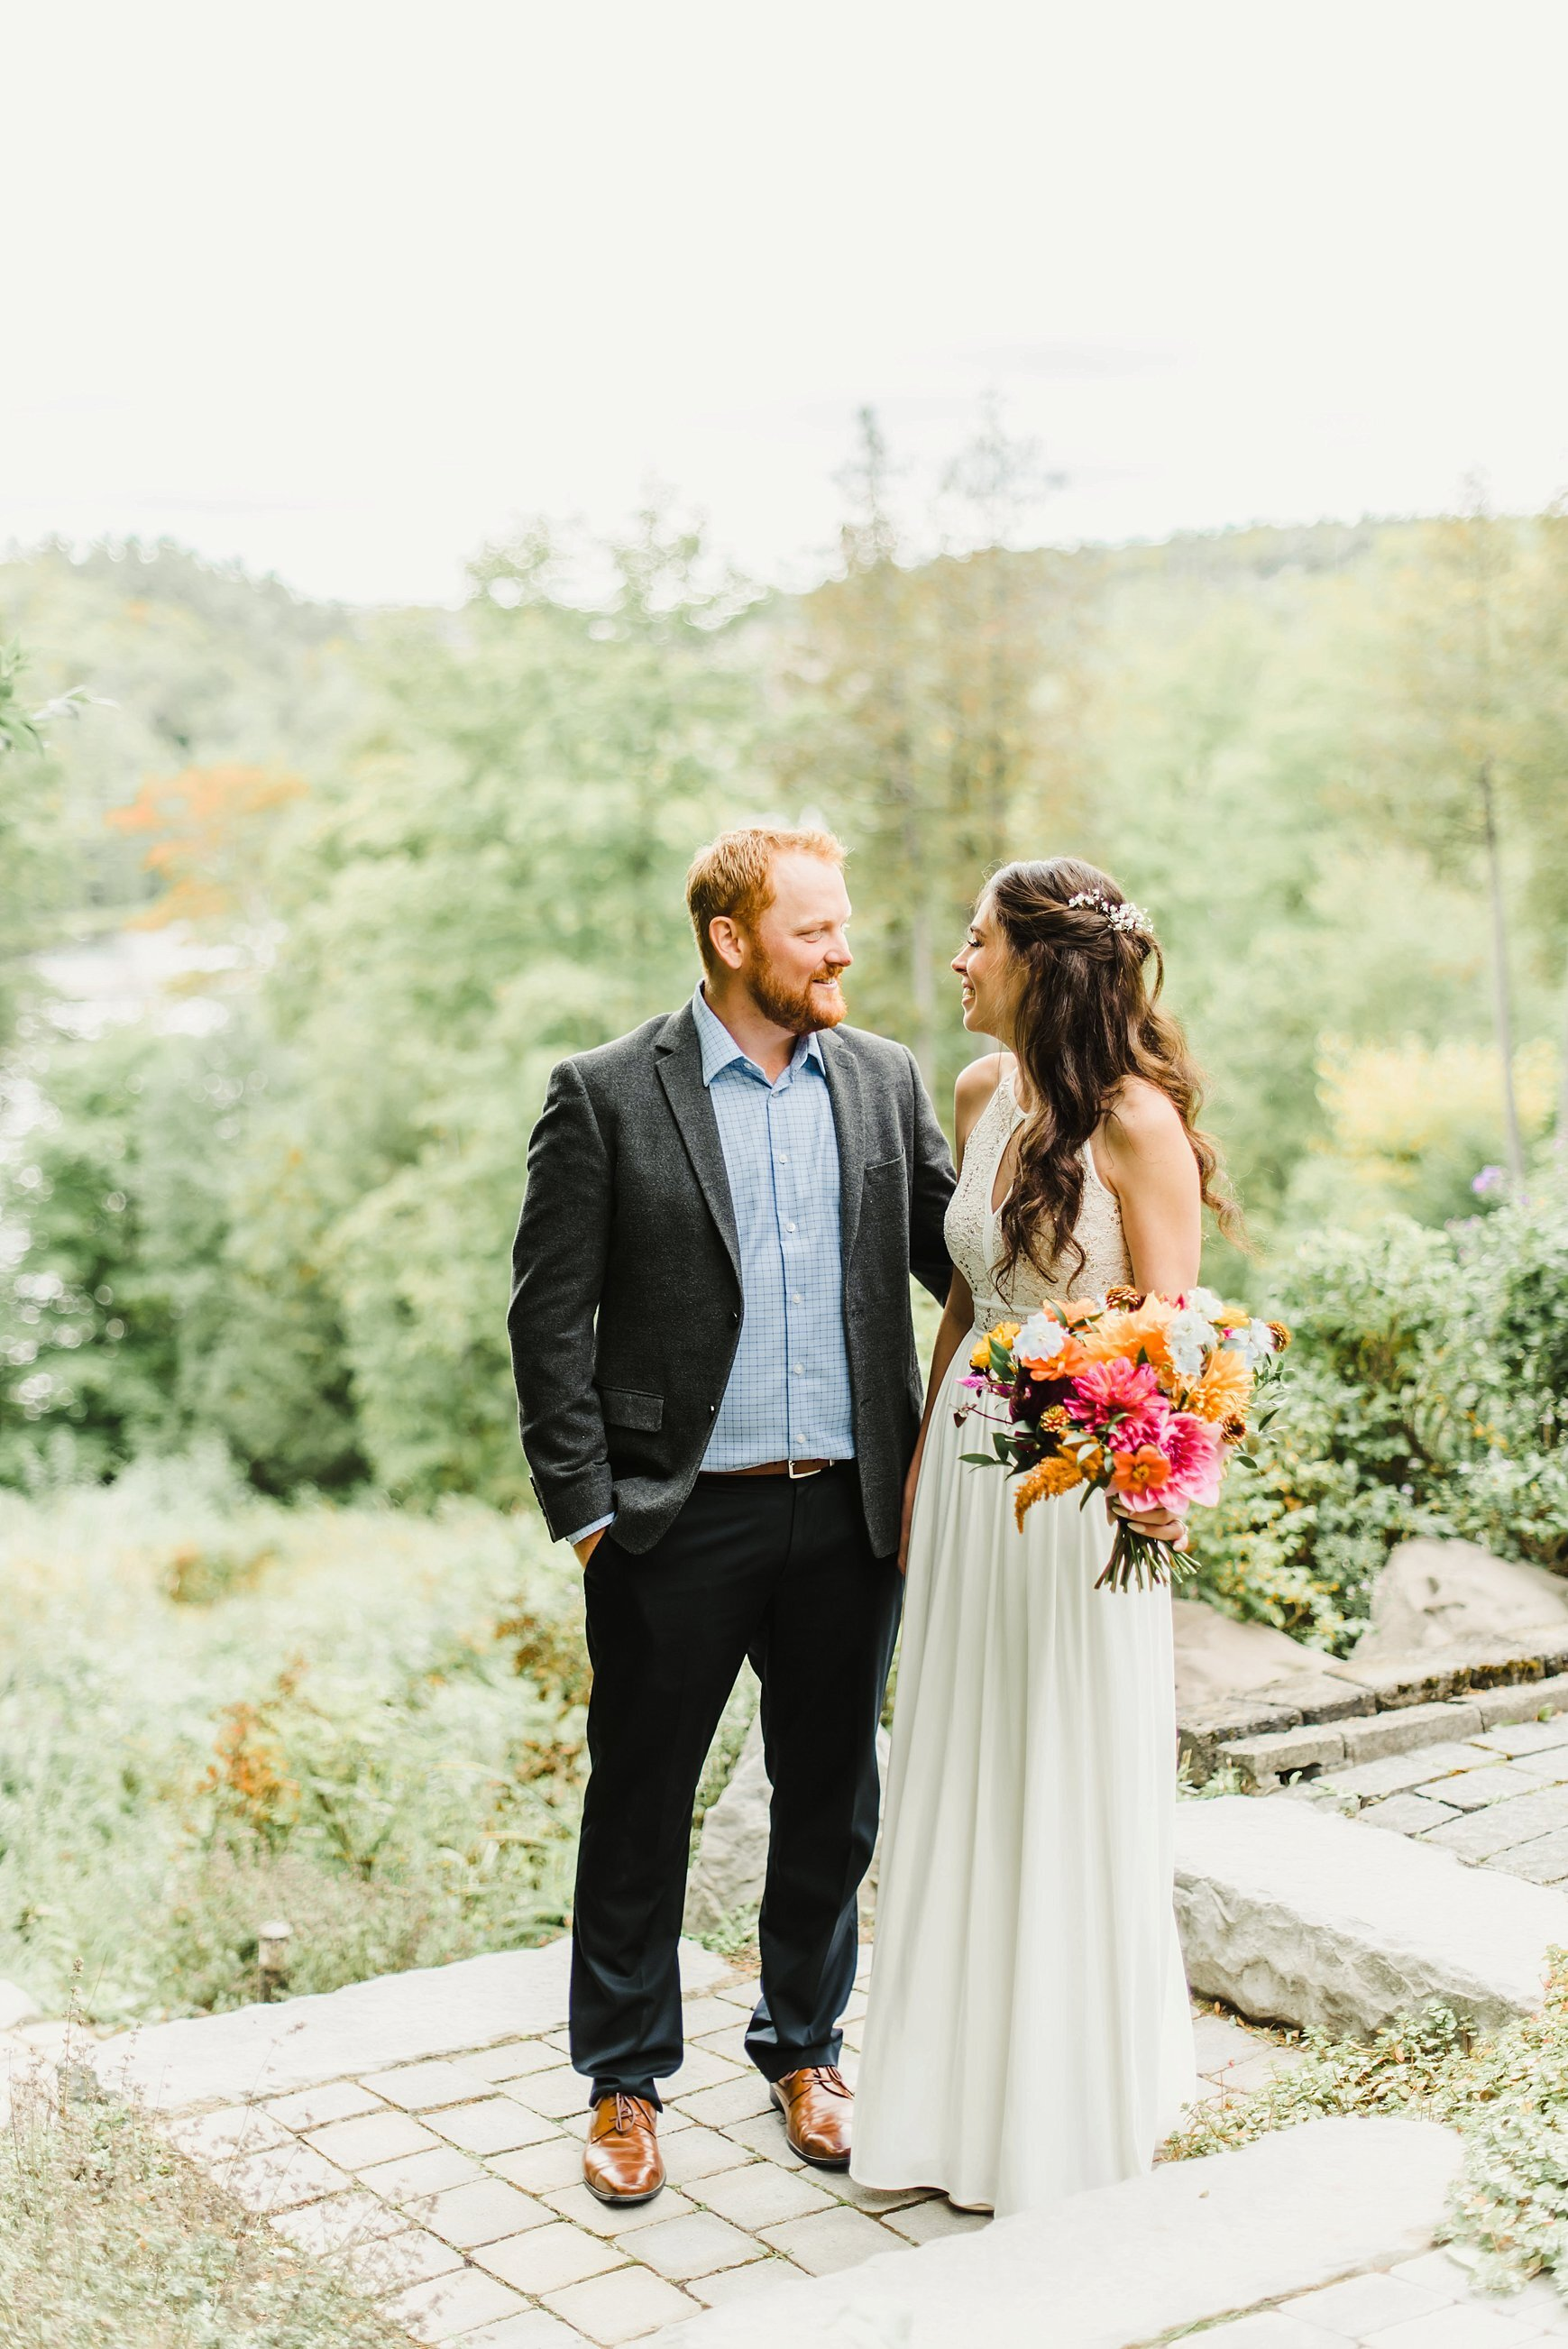 light airy indie fine art ottawa wedding photographer | Ali and Batoul Photography_1198.jpg